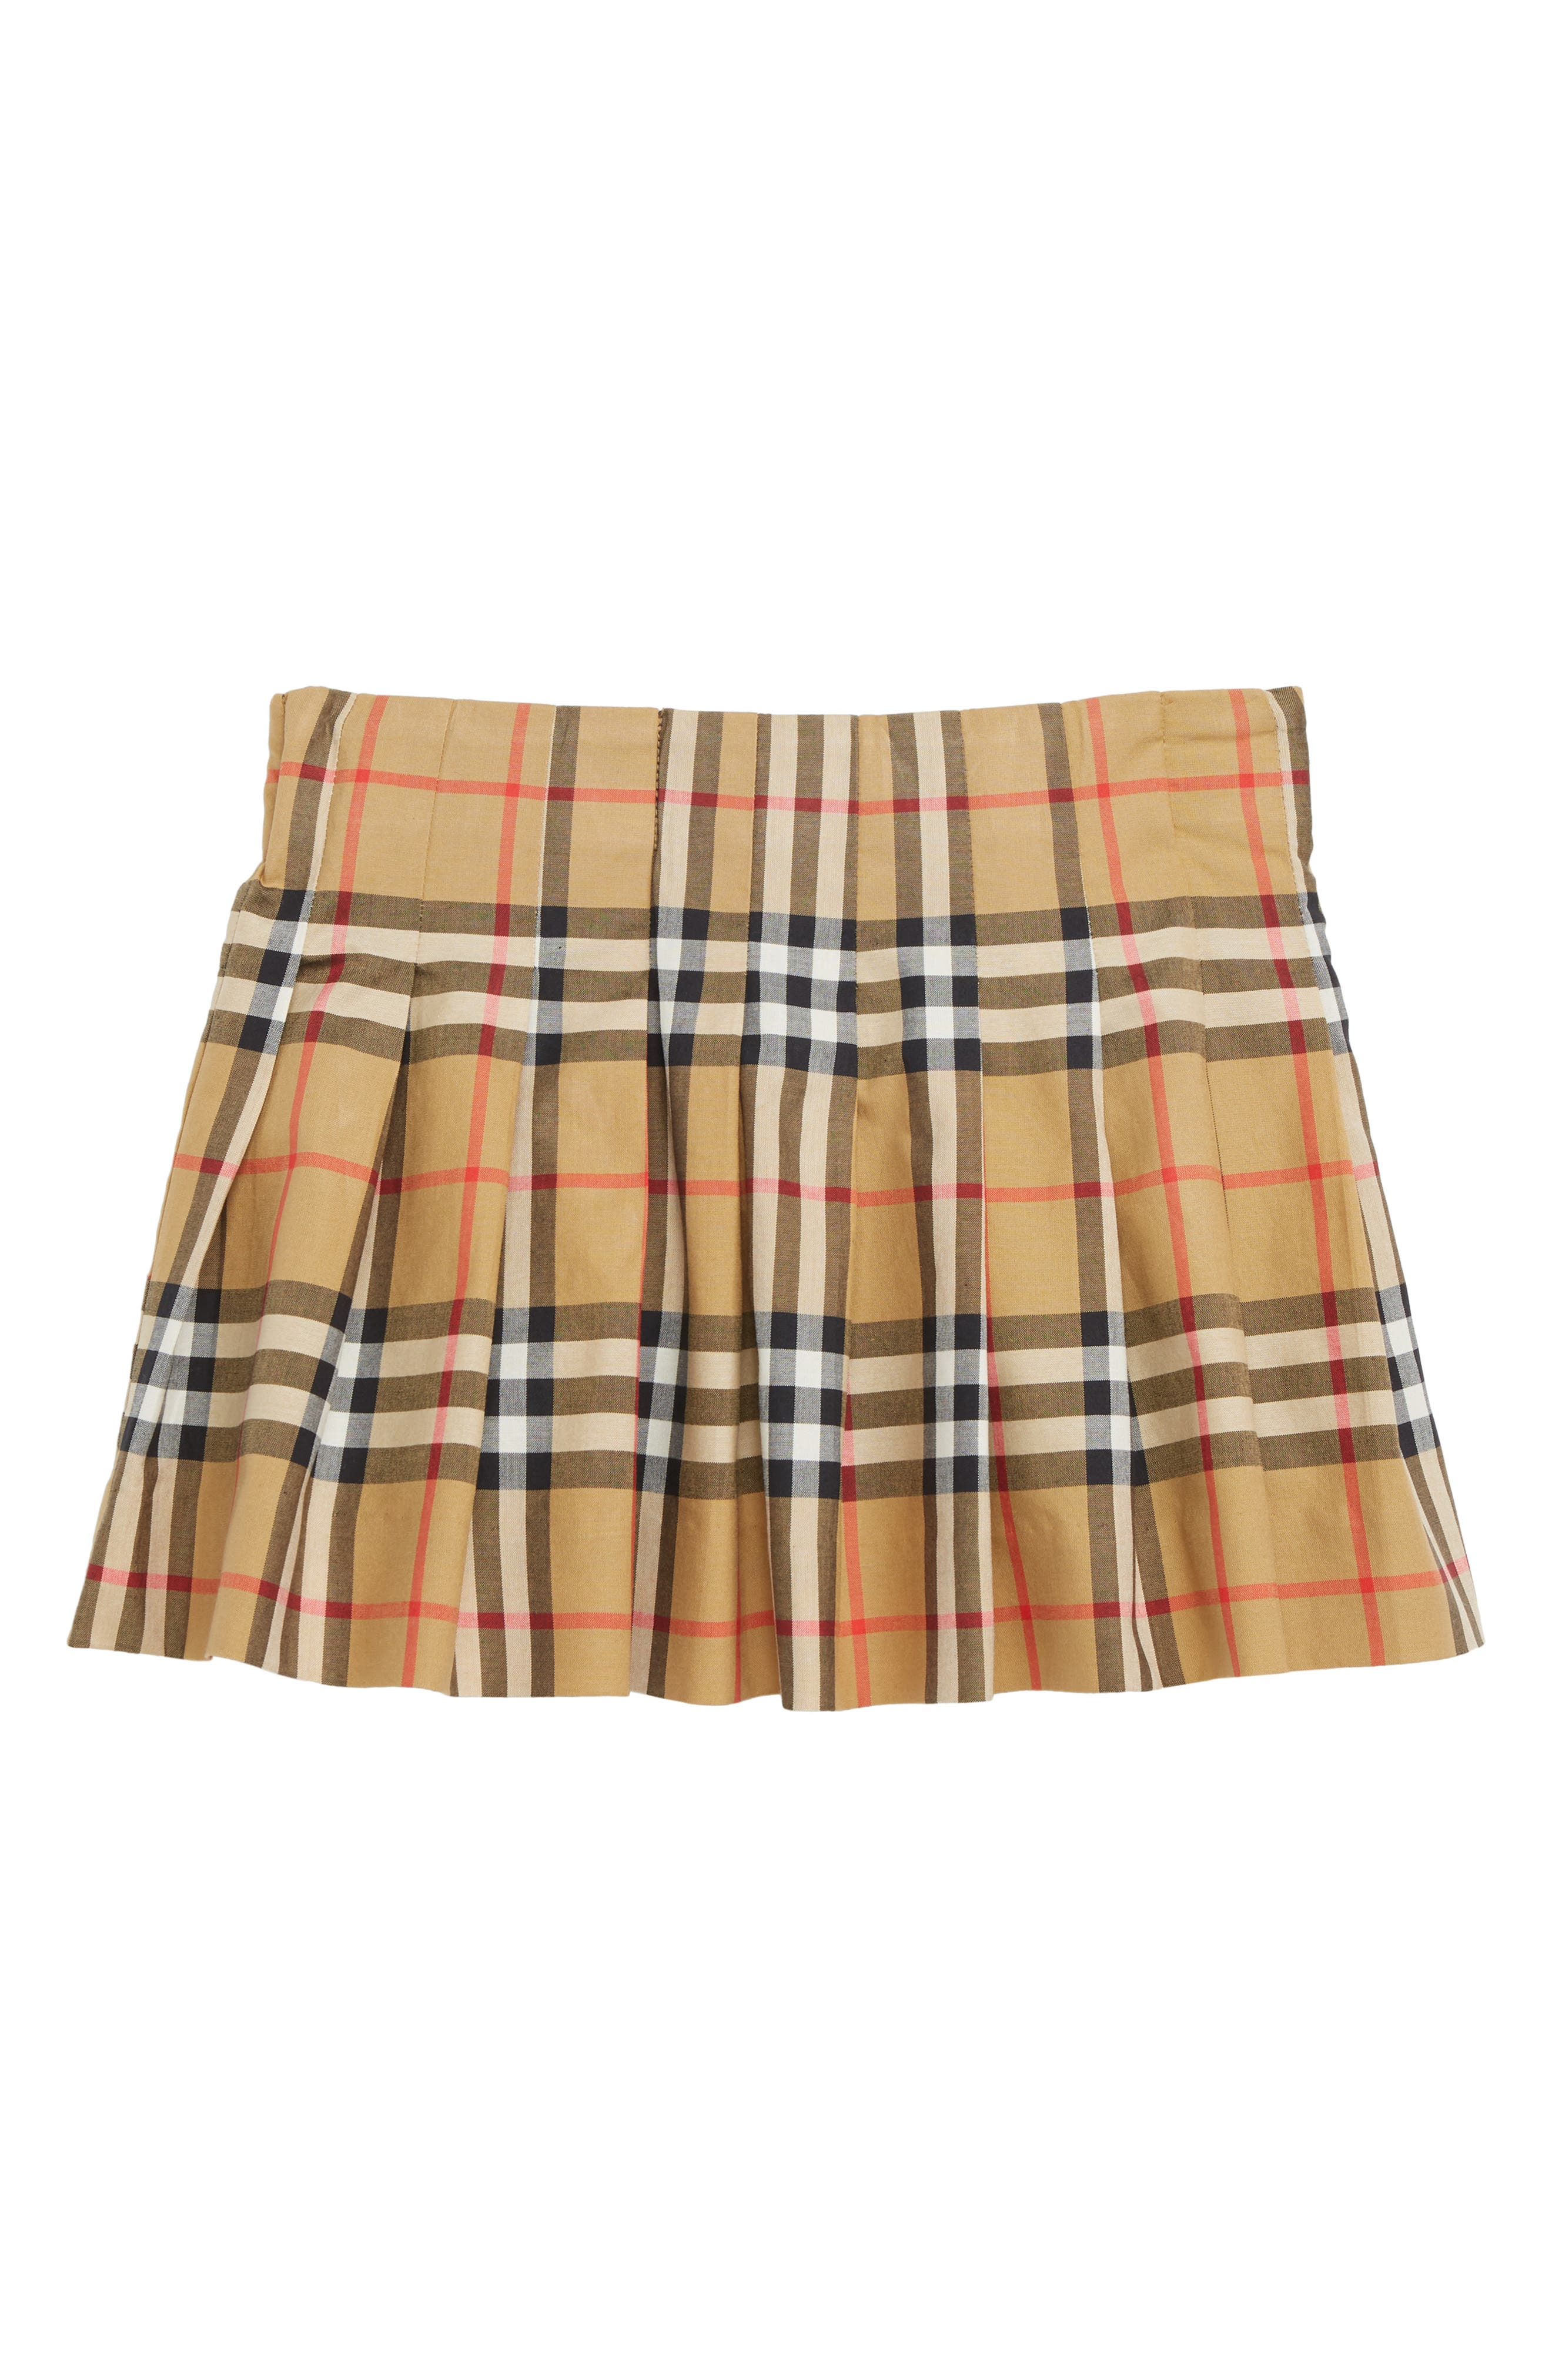 Girls Burberry Pearl Pleated Vintage Check Skirt Size 8Y  Yellow